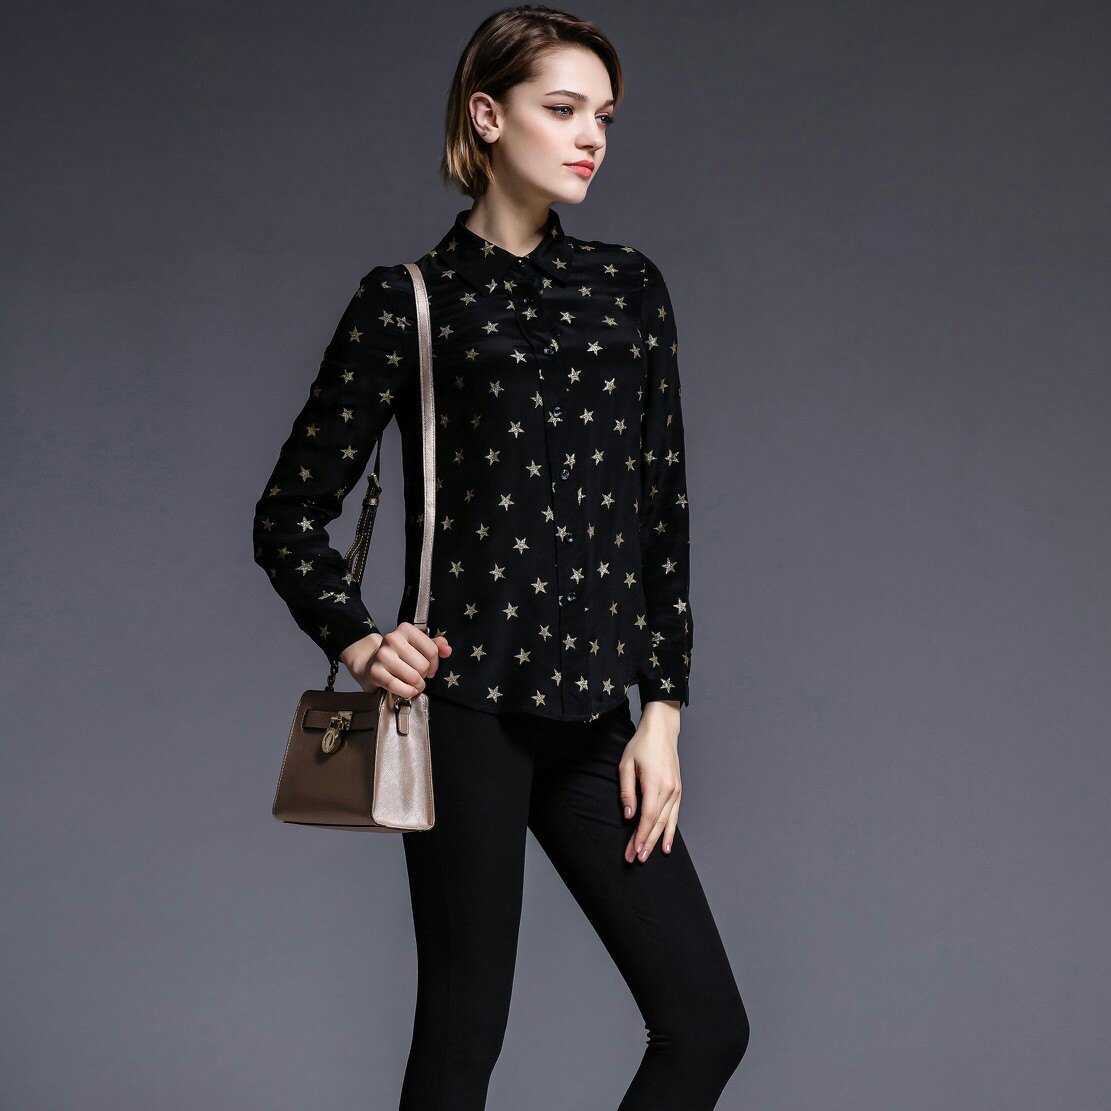 High Quality Women Blouses 2016 New Spring Fashion Vintage ...